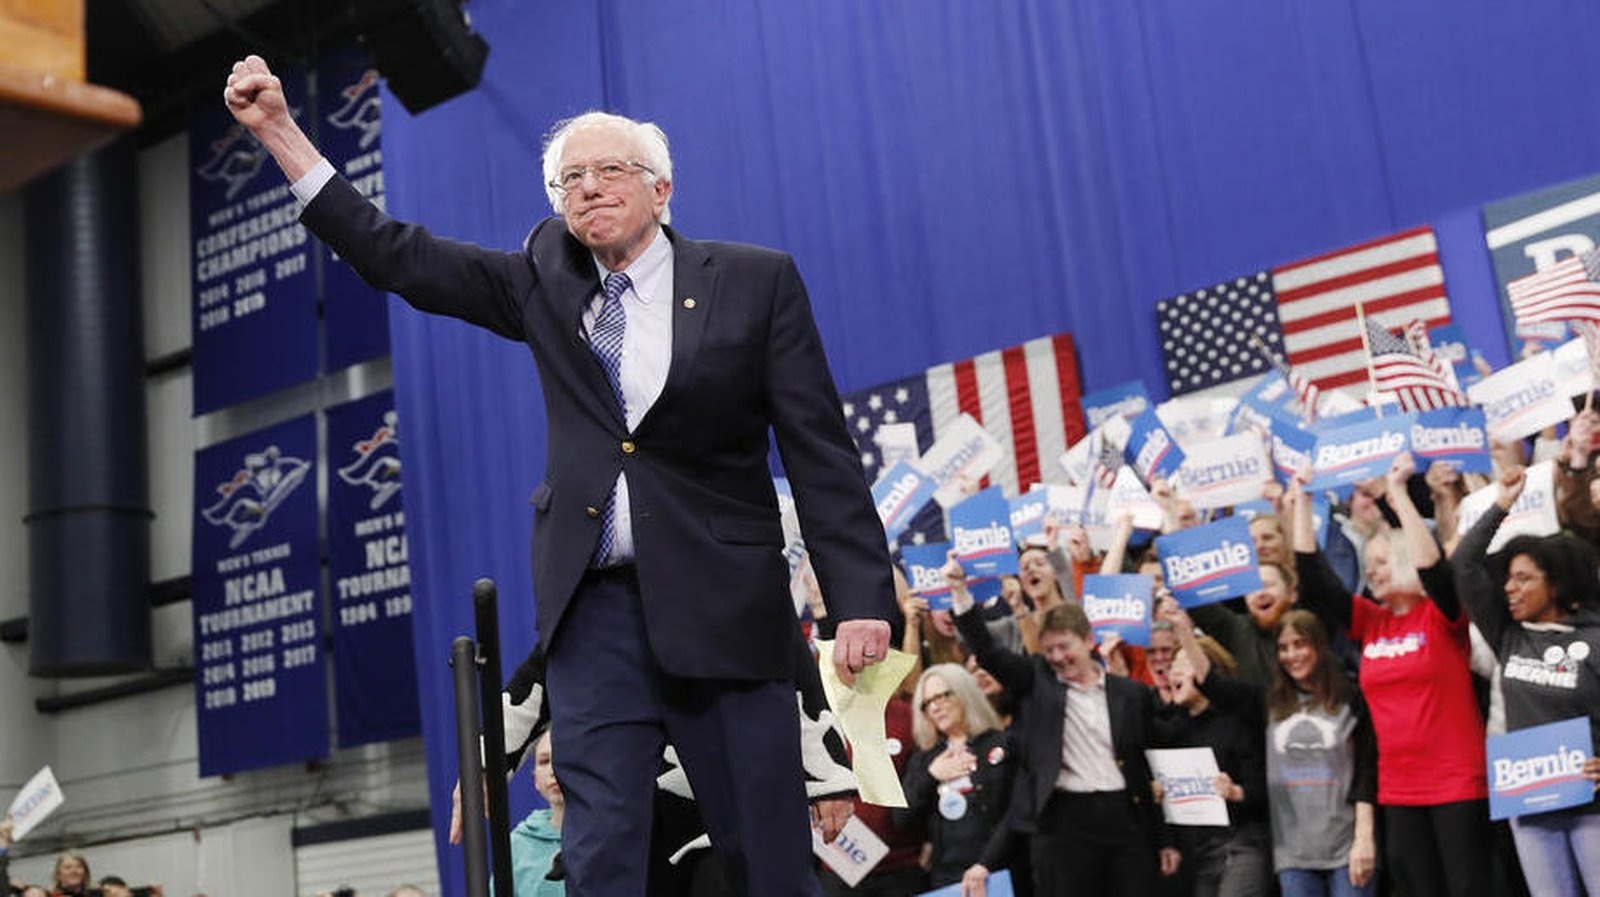 Does Bernie Sanders have what it takes to beat Donald Trump?